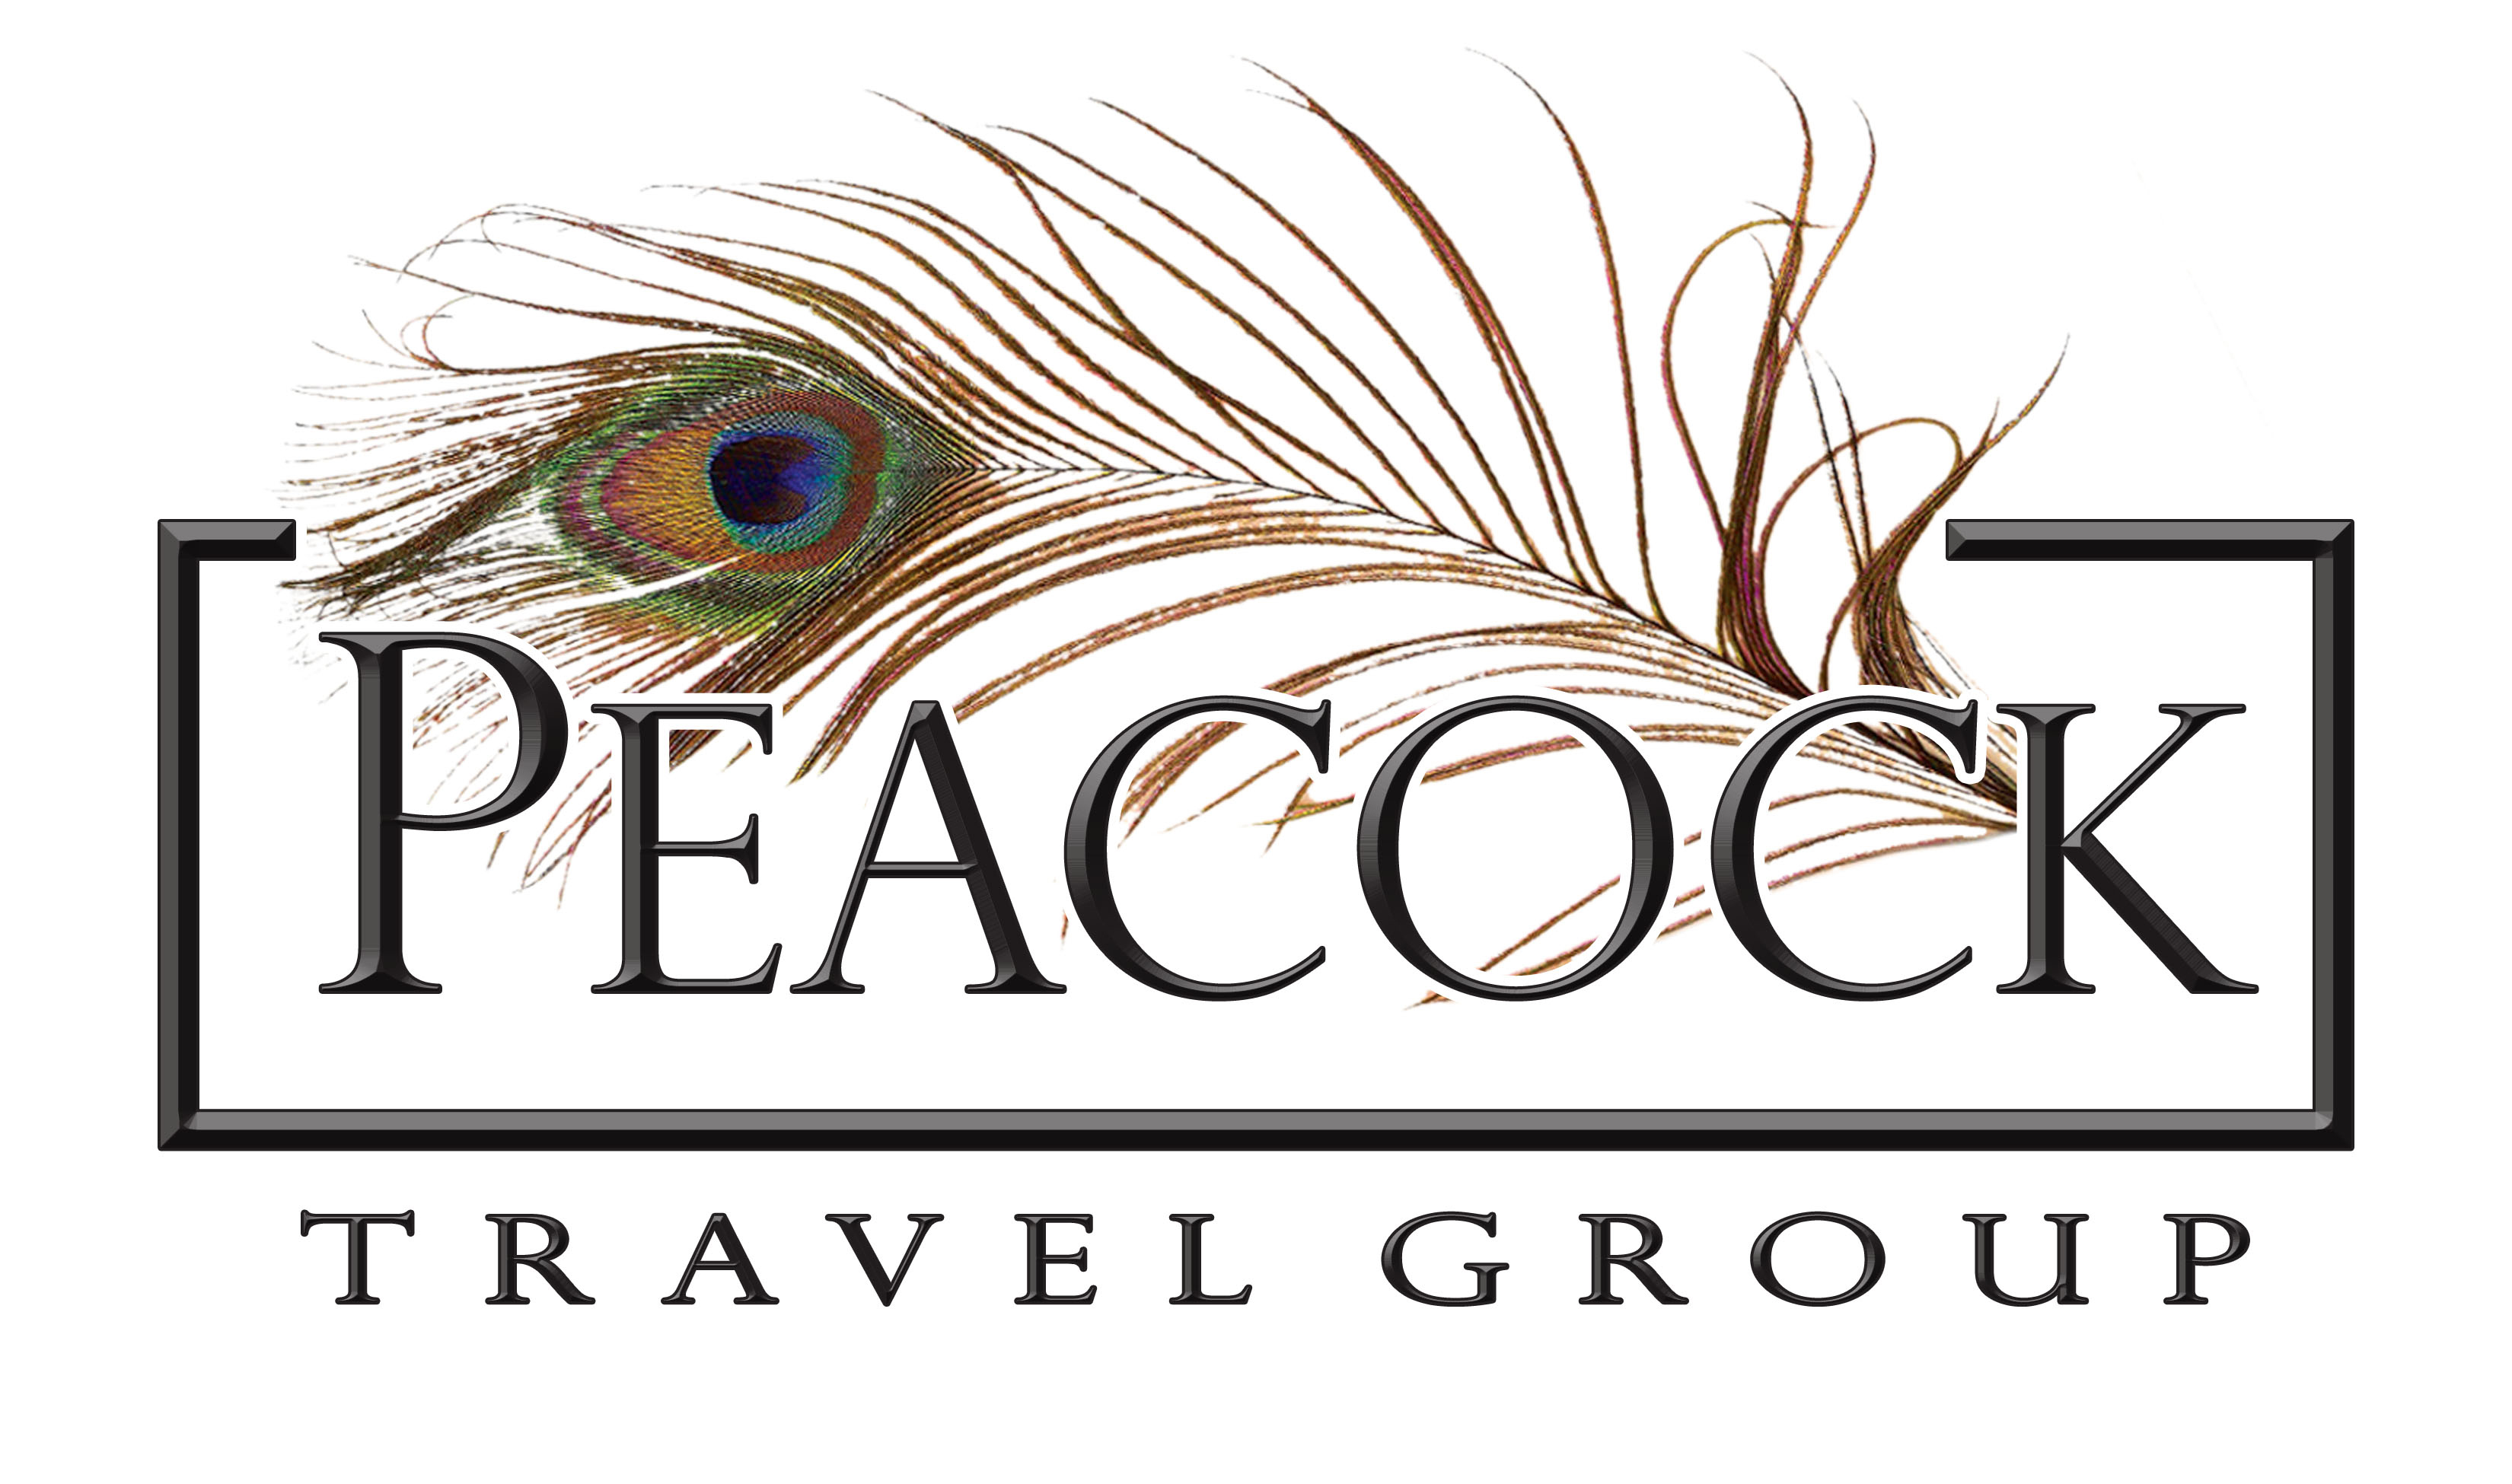 Peacock Travel Group ATC